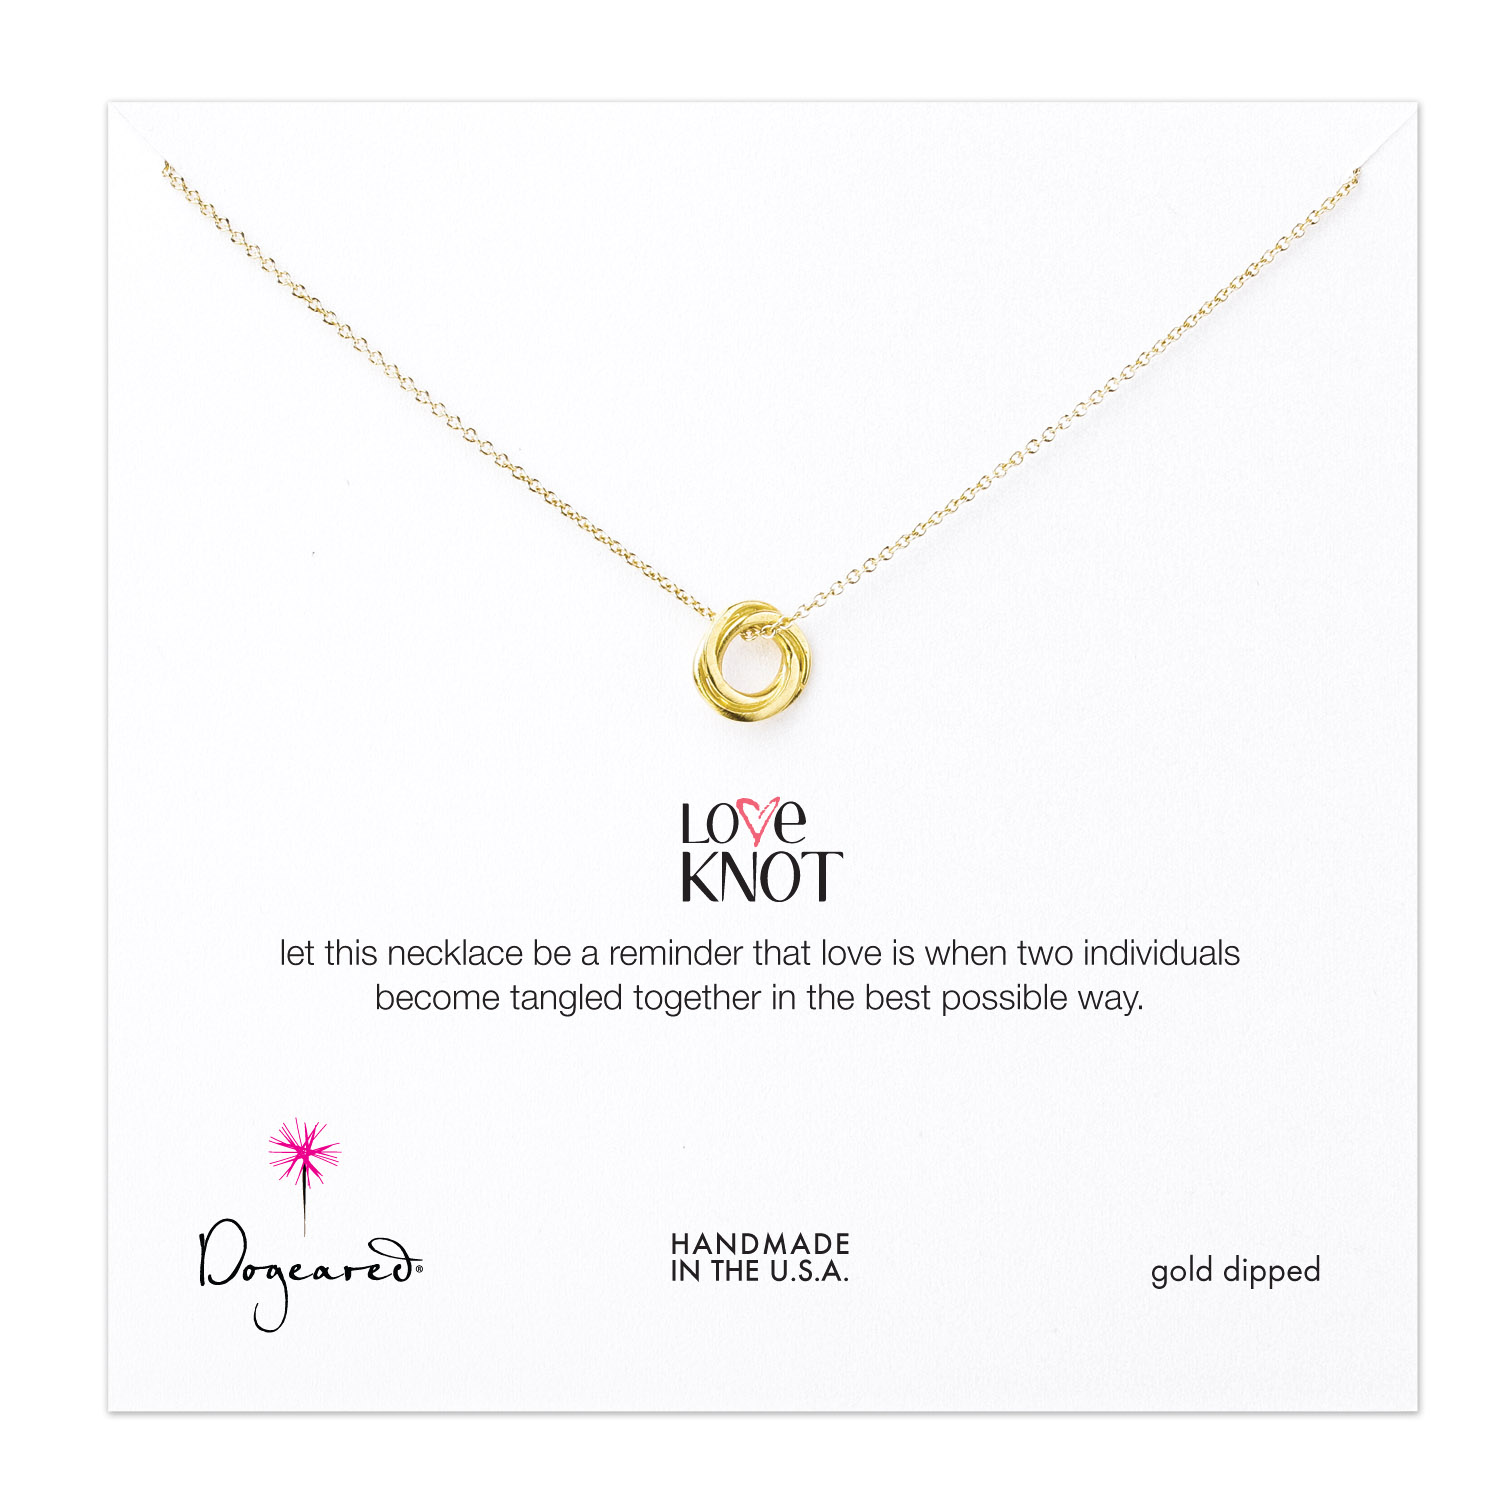 Dogeared Jewelry love knot necklace, gold dipped - 18 inches